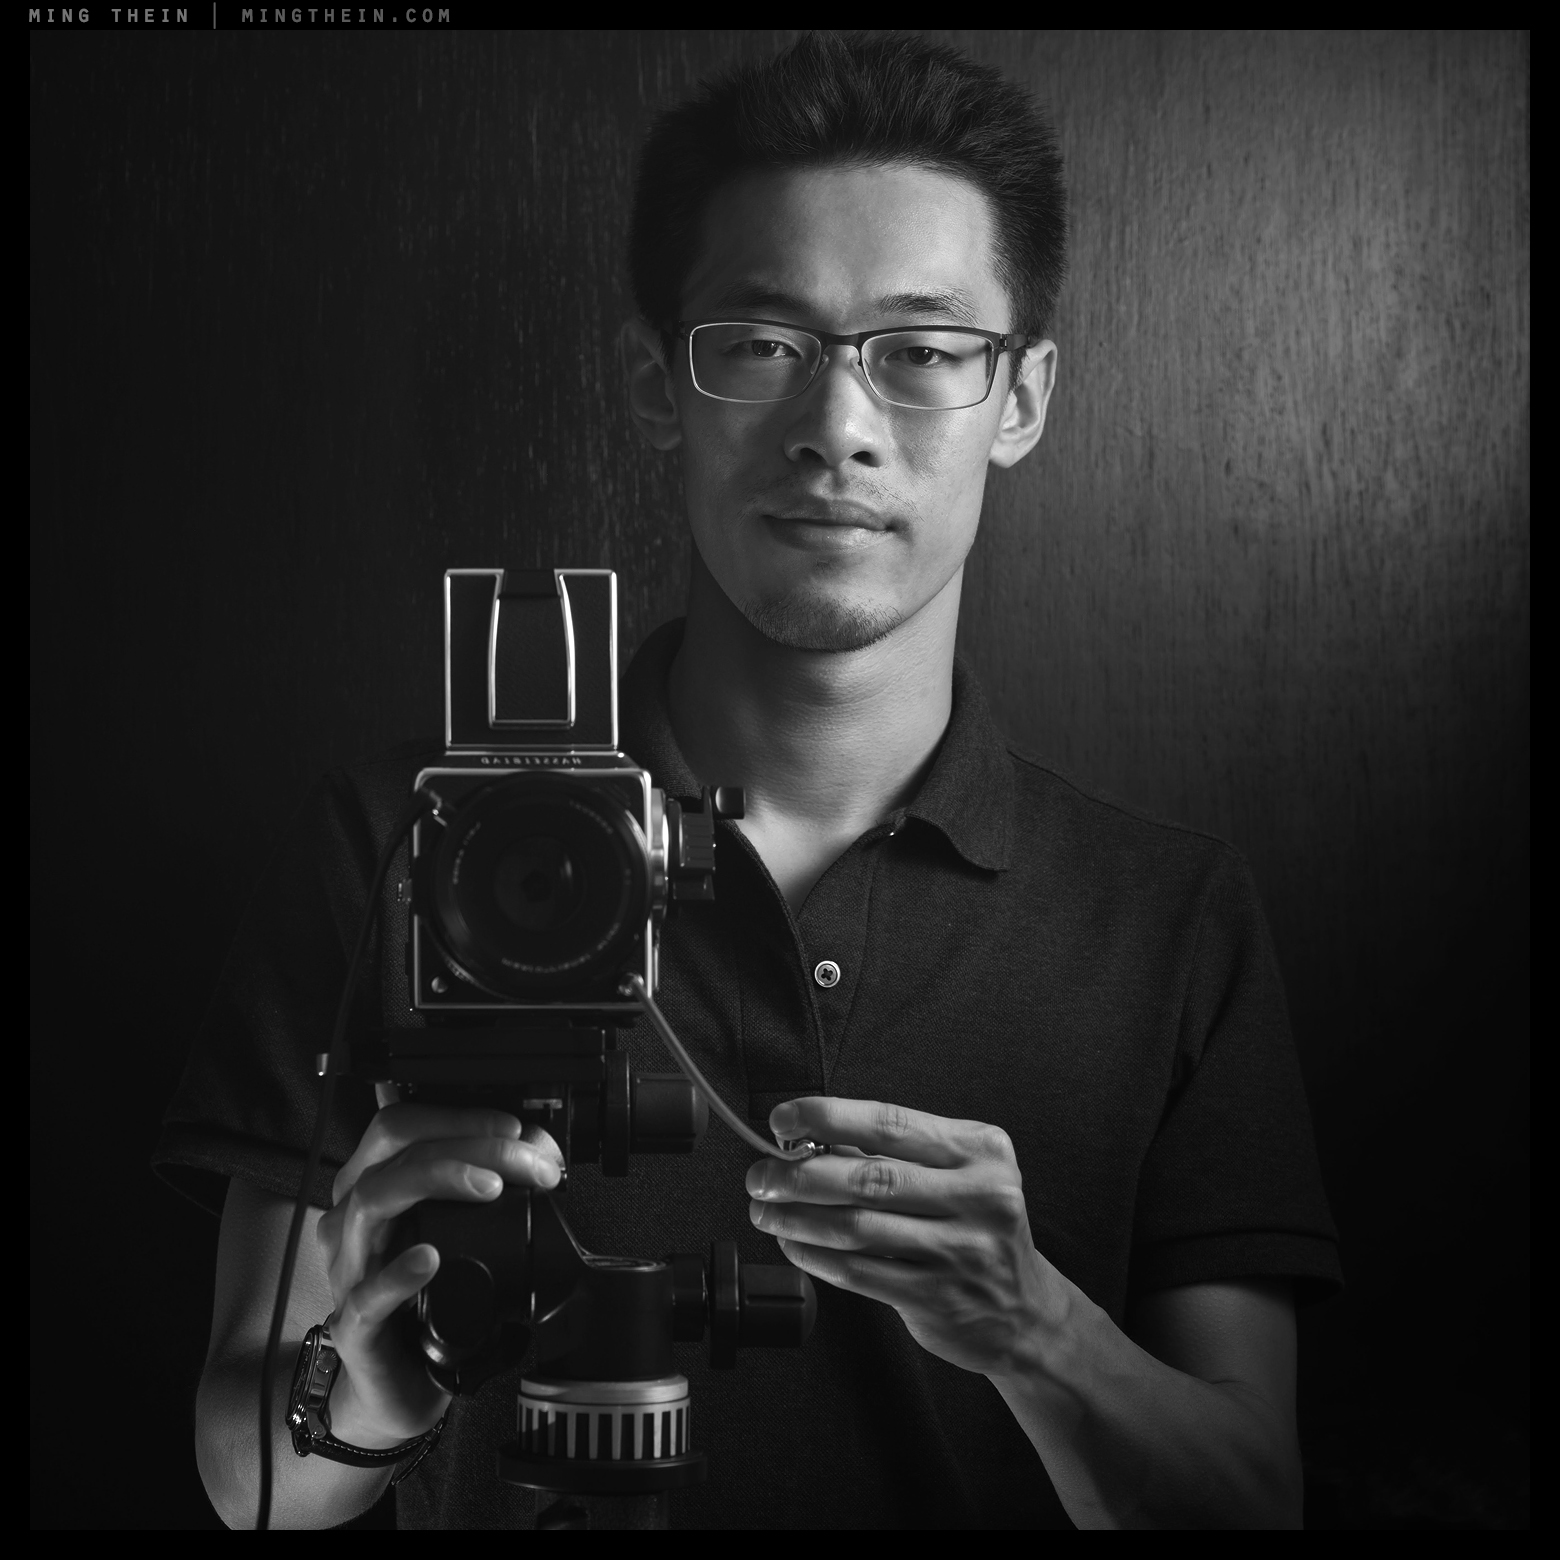 Ming Thein watch phtographer